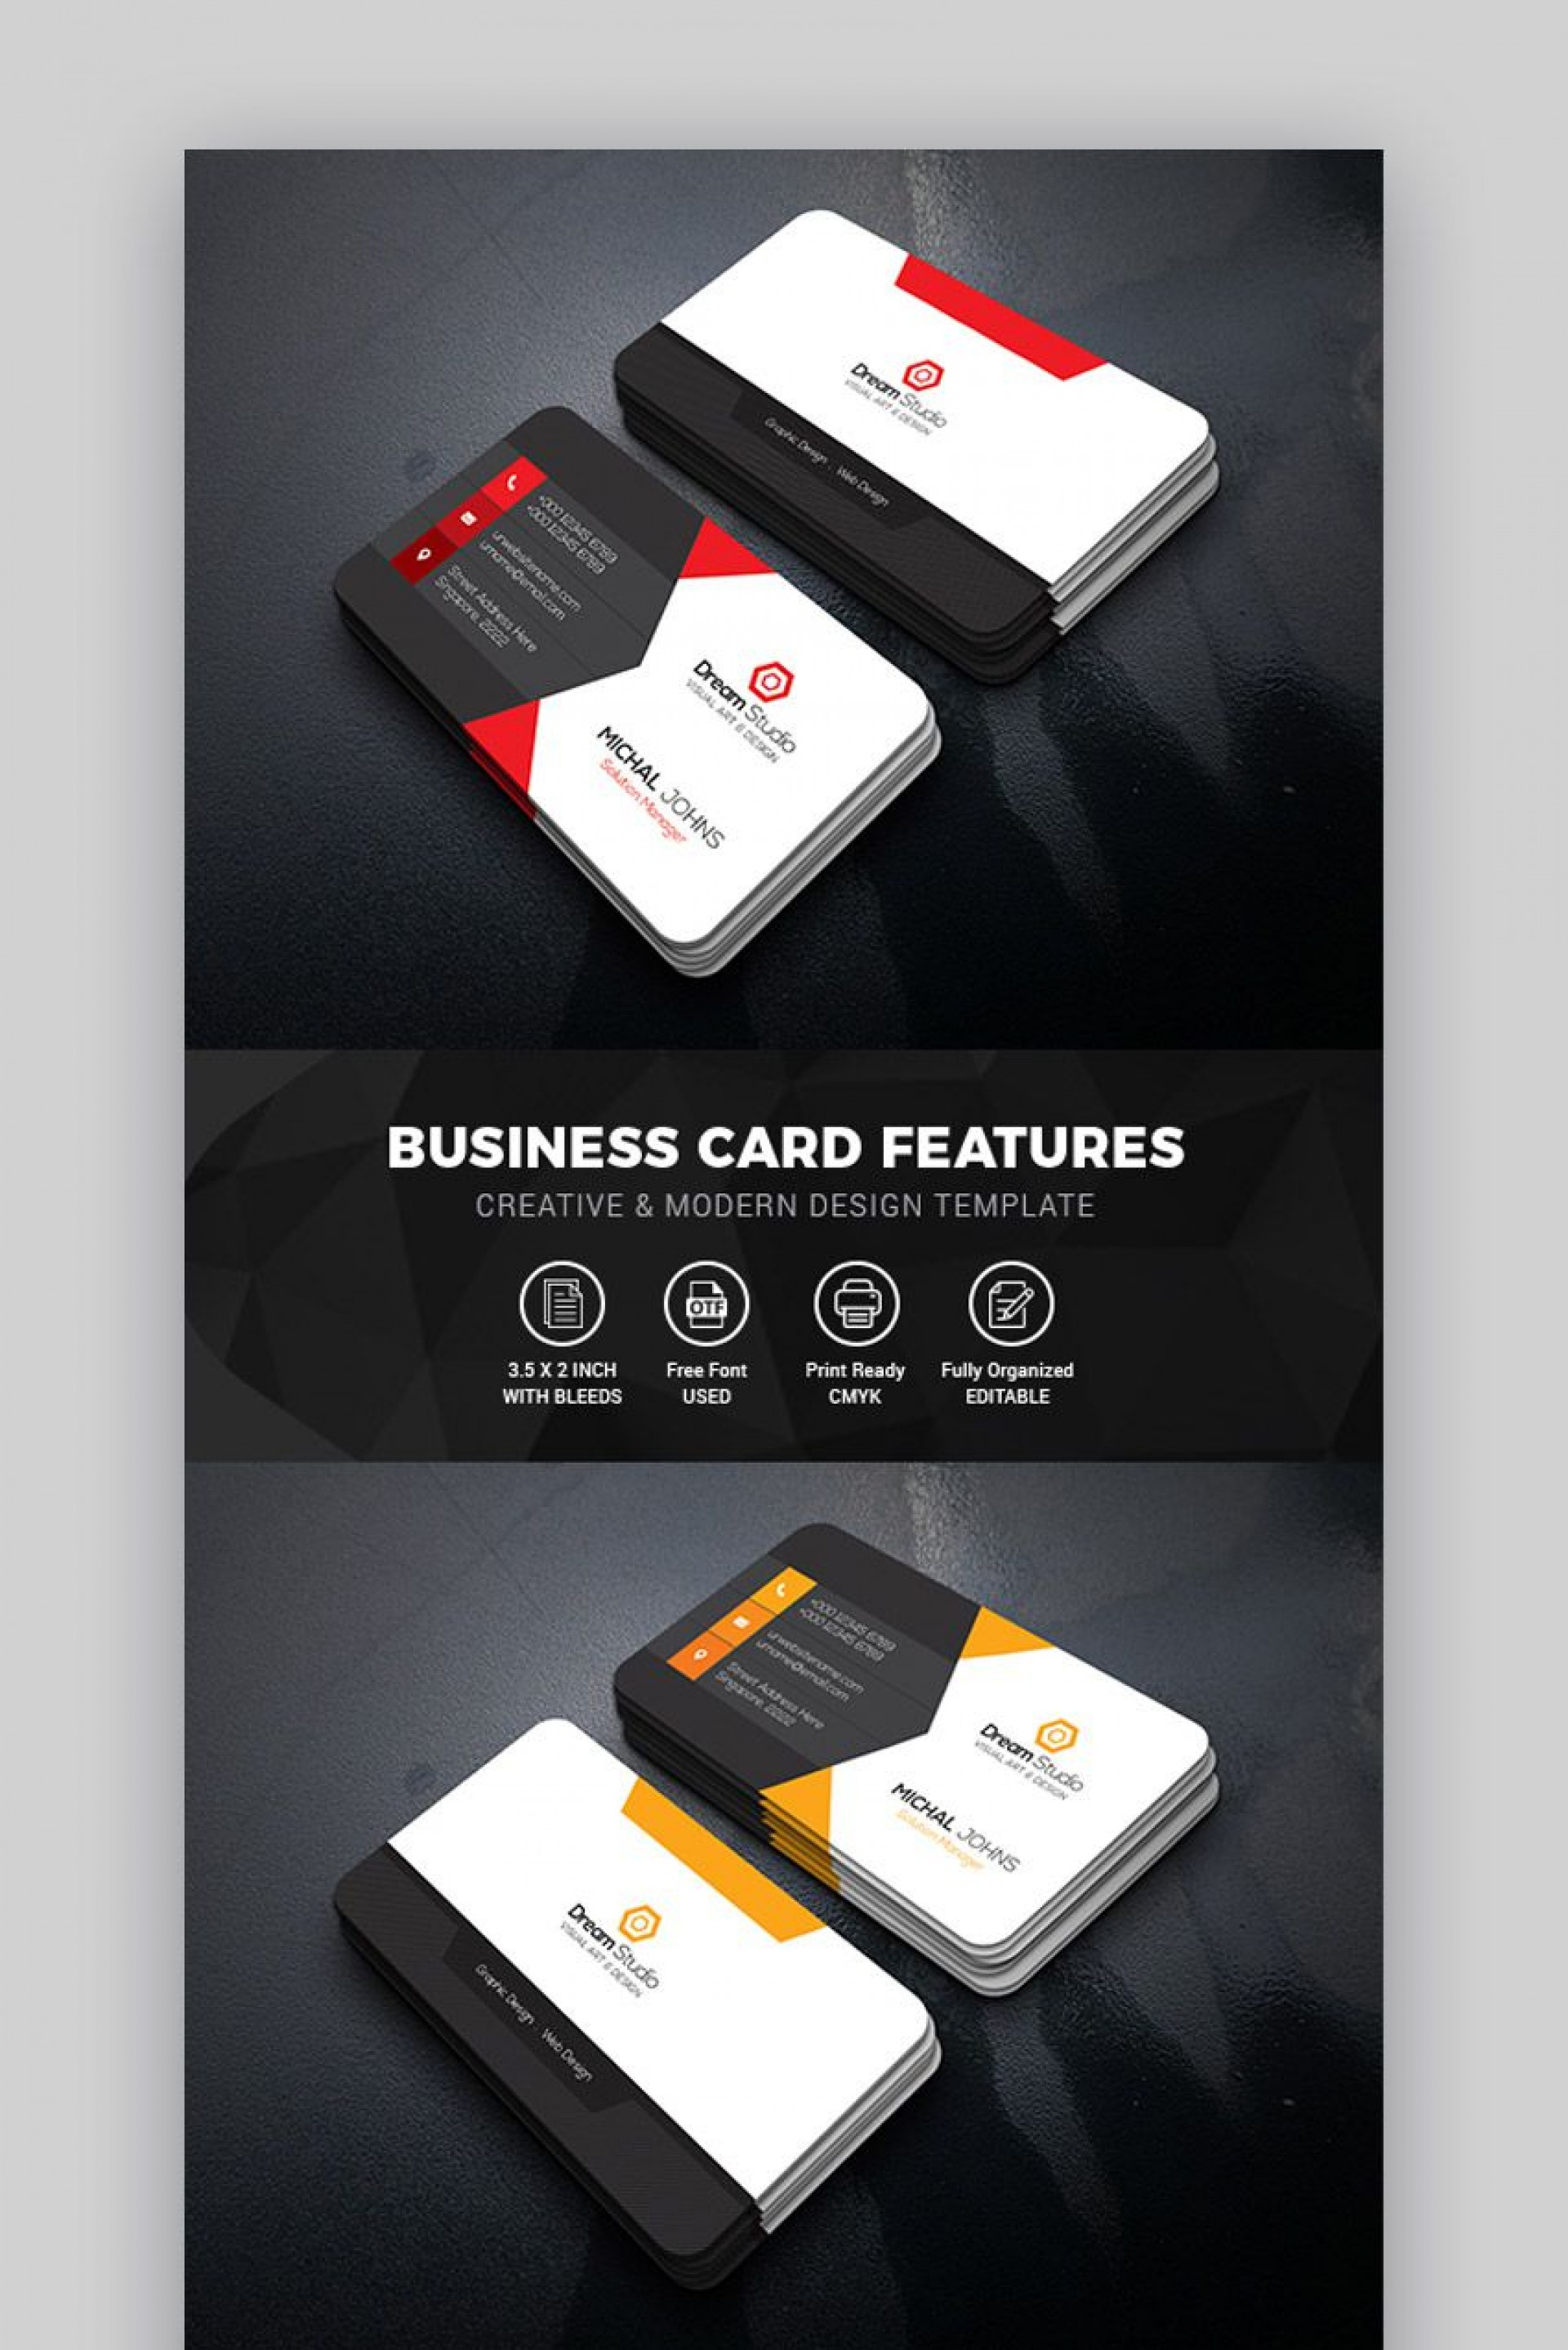 008 Wonderful Free Blank Busines Card Template Photoshop Image  Download Psd1920